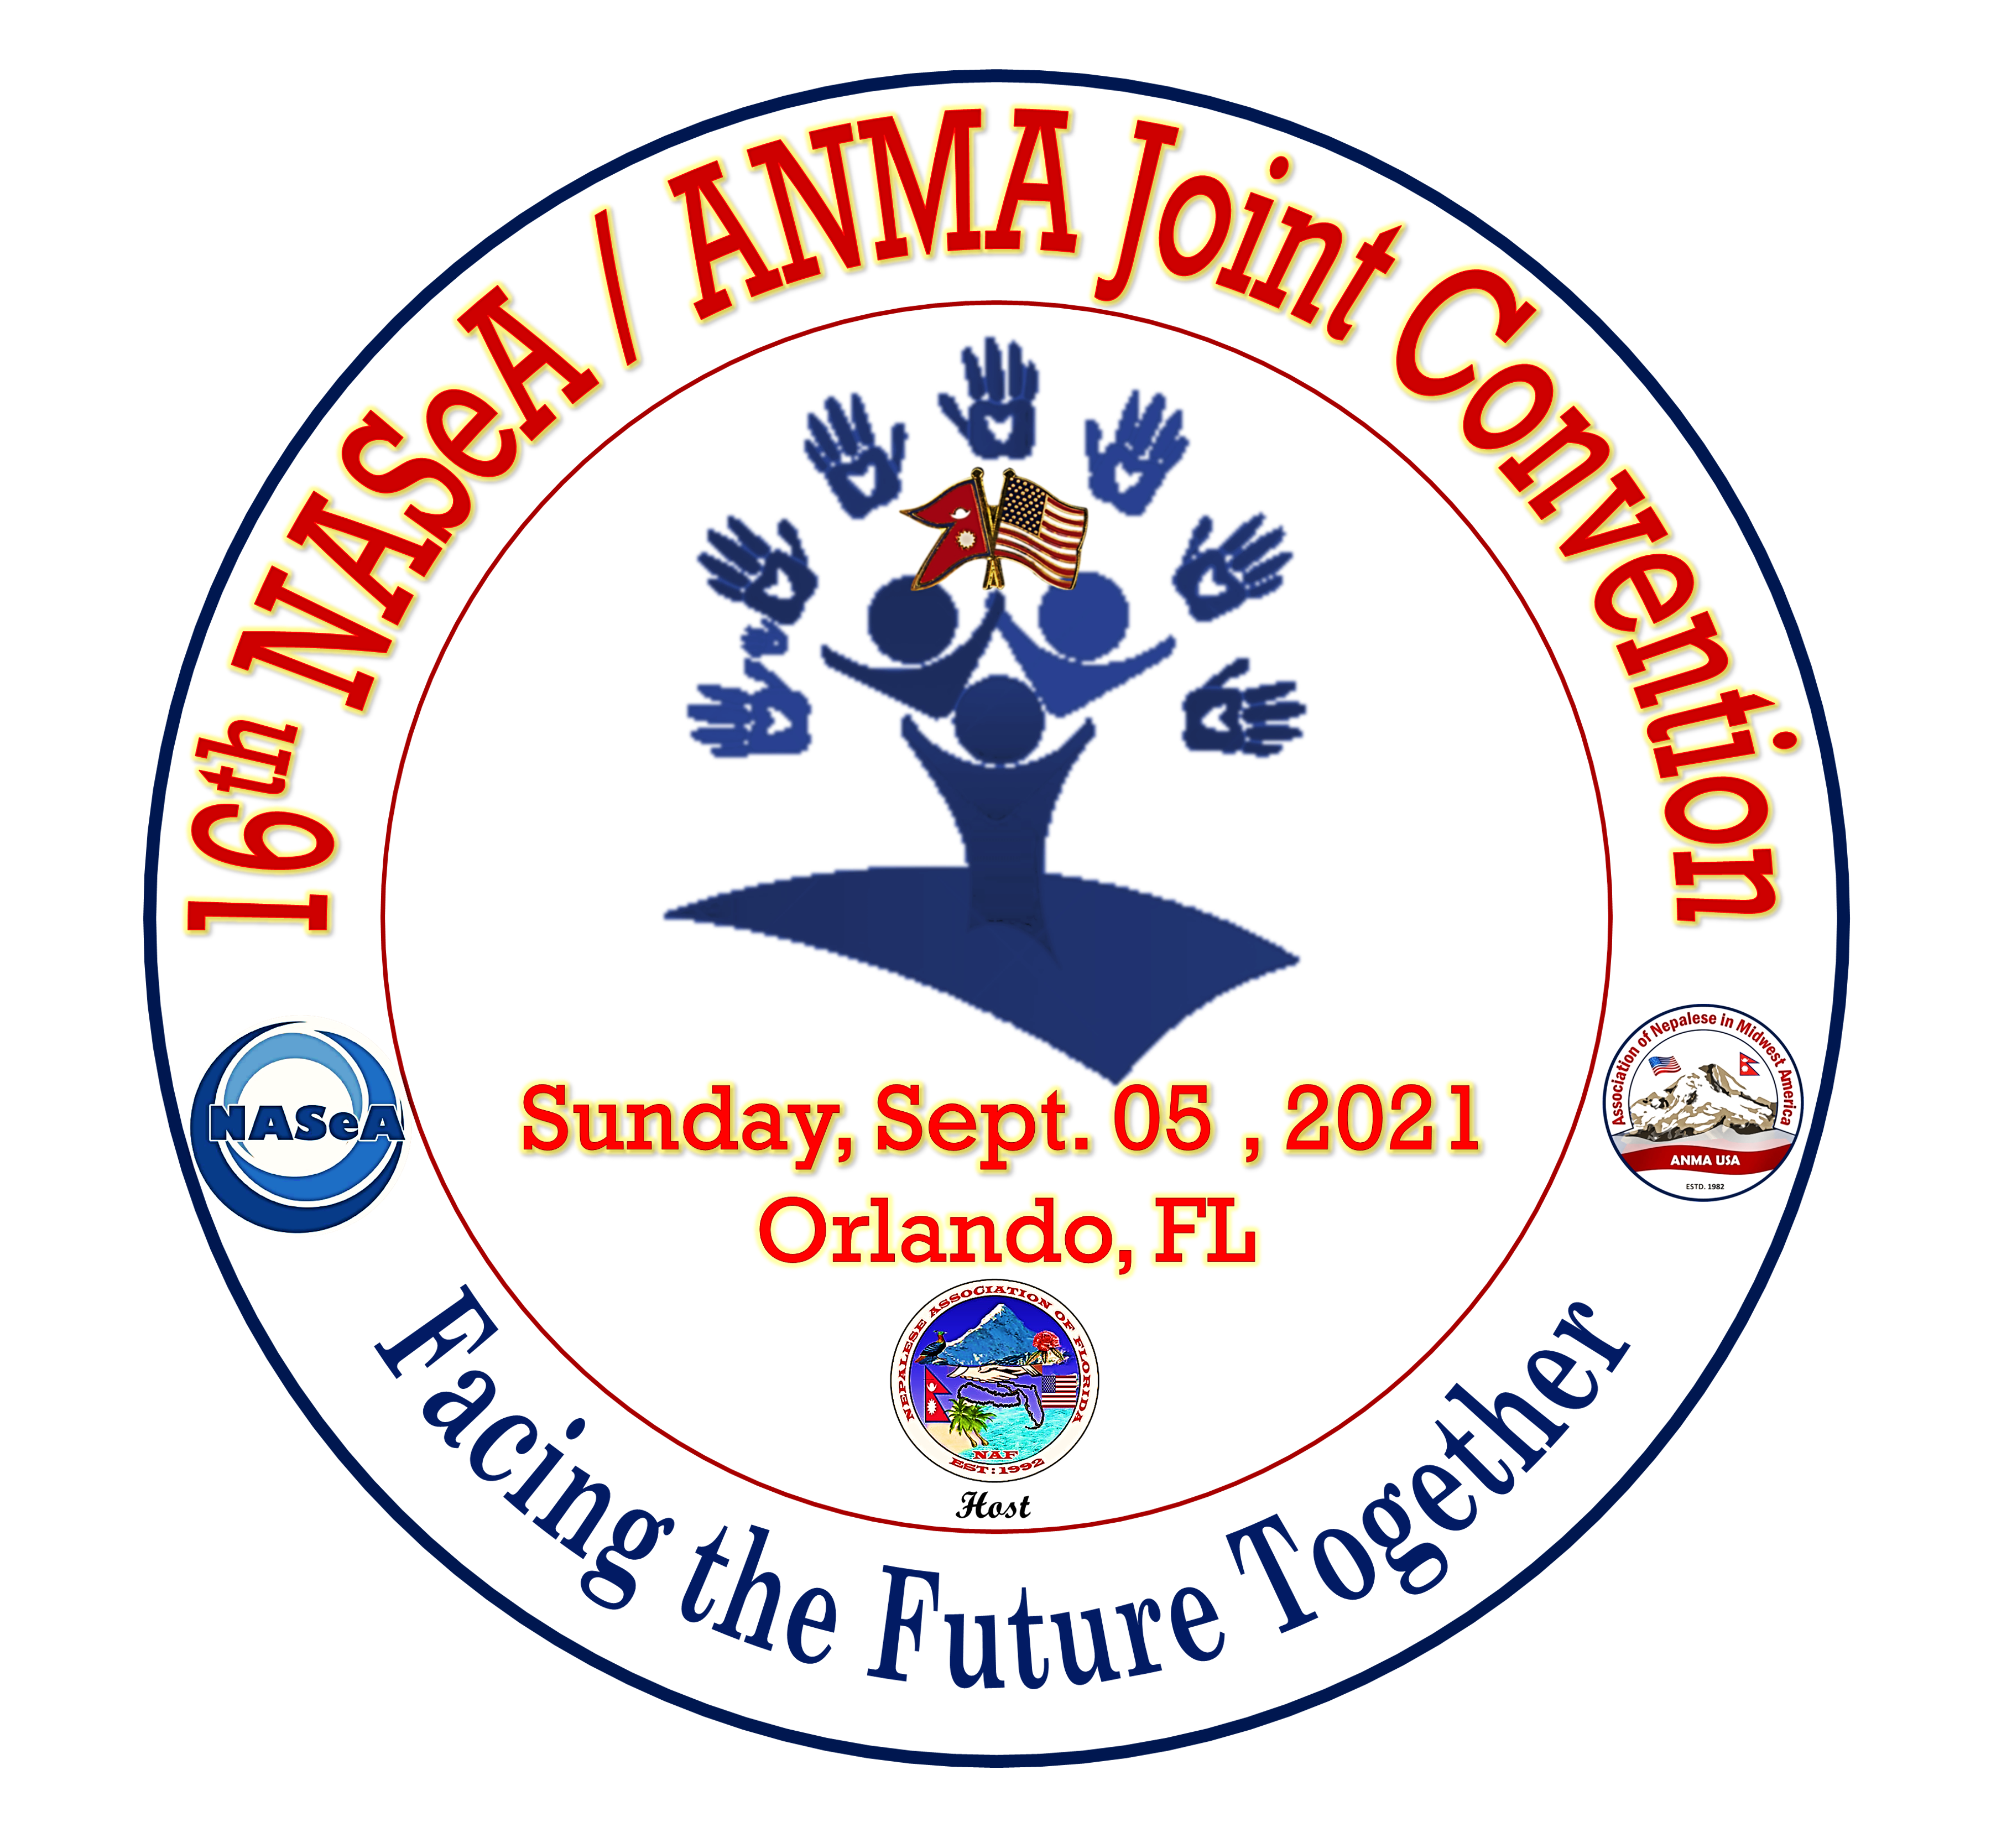 16th NASeA/ANMA Joint Convention